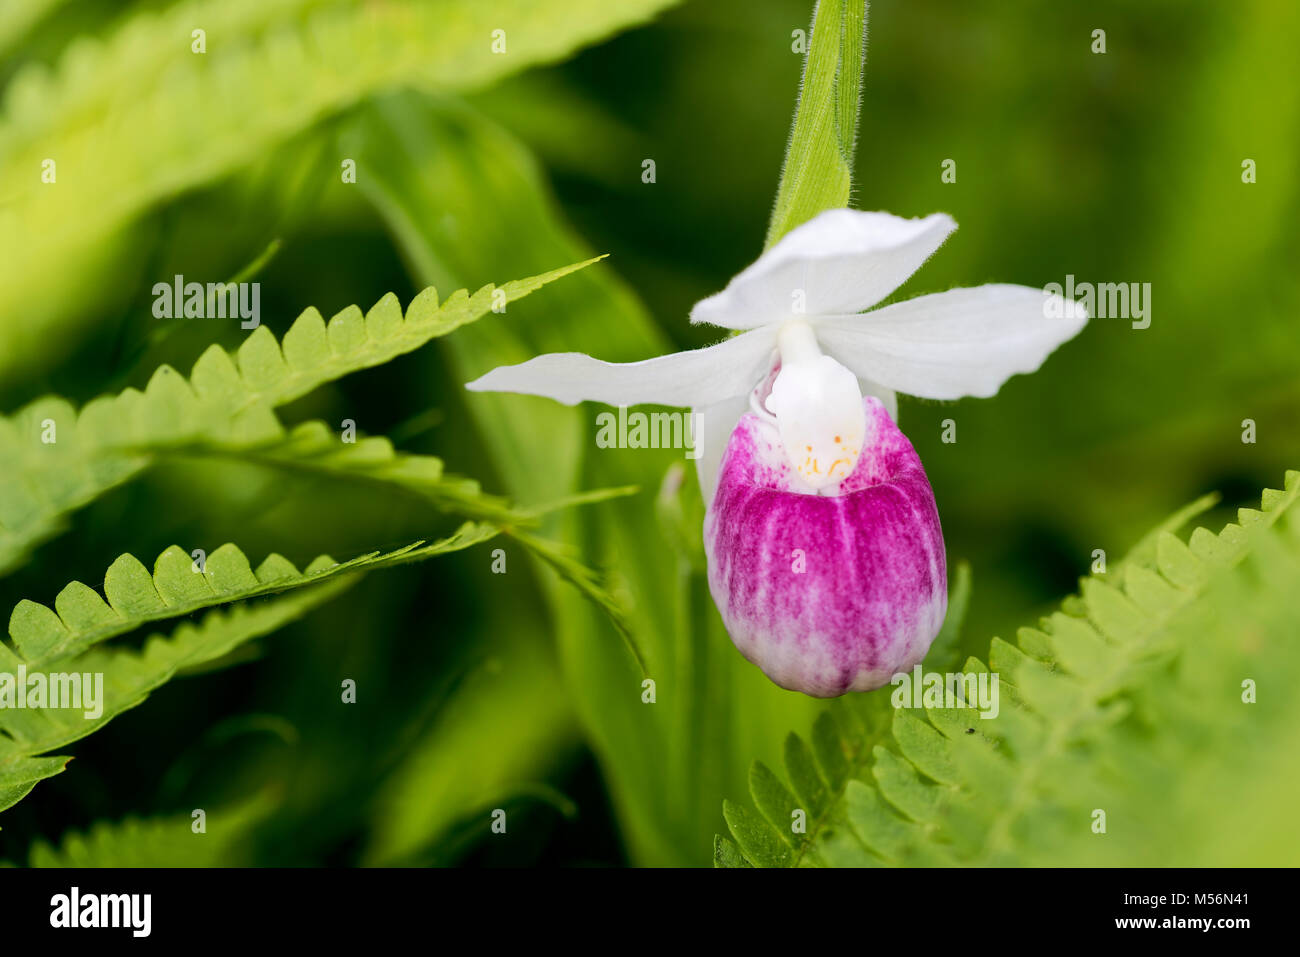 Showy Lady's Slipper flower blooming amid Cinnamon Ferns at  Eshqua Bog Natural Area, TNC preserve, Vermont. - Stock Image